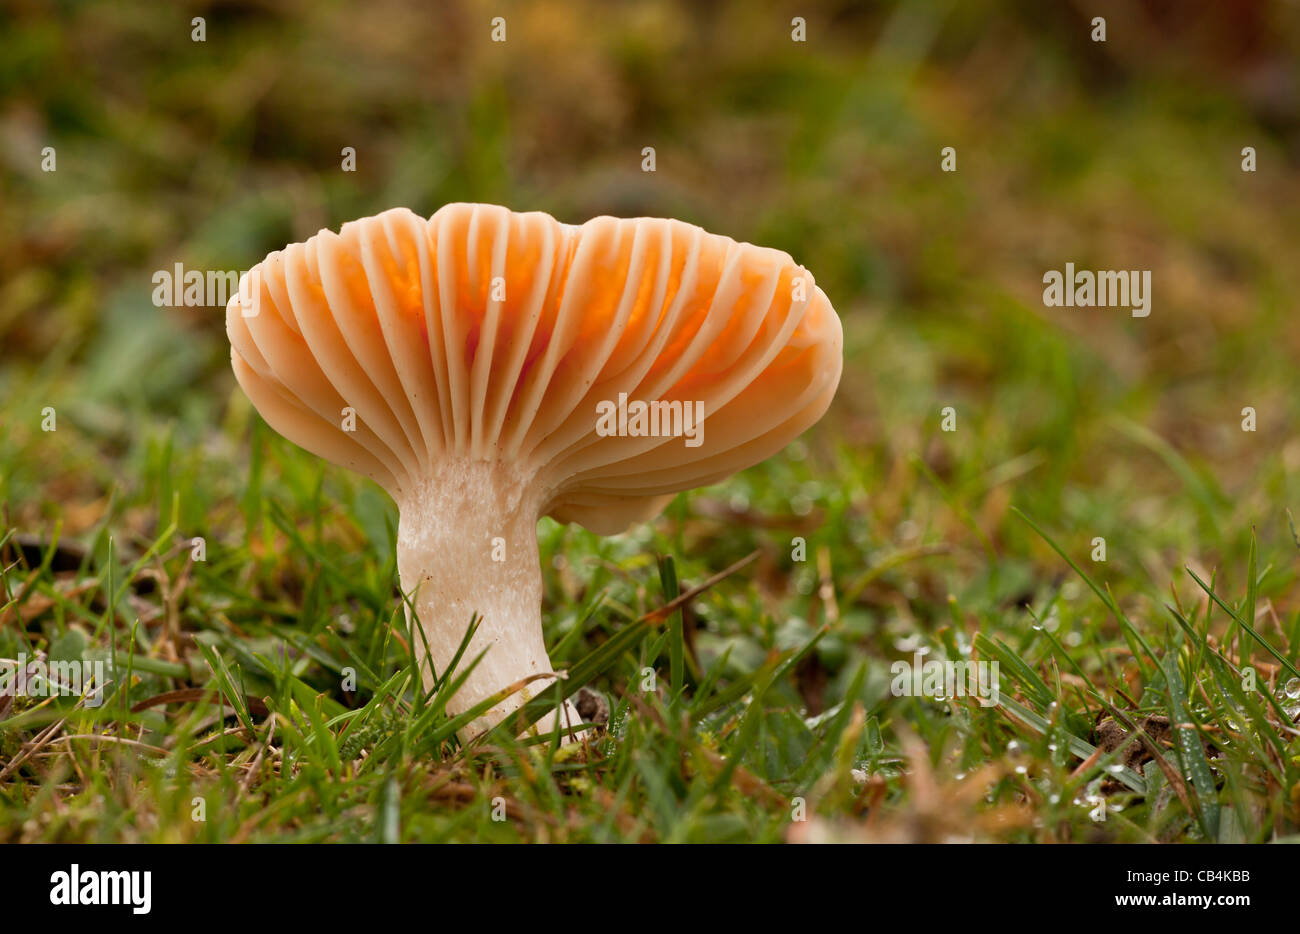 Meadow Waxcap, Hygrocybe pratensis, - edible species - in old grazed grassland at Emery Down, New Forest, Hants. - Stock Image